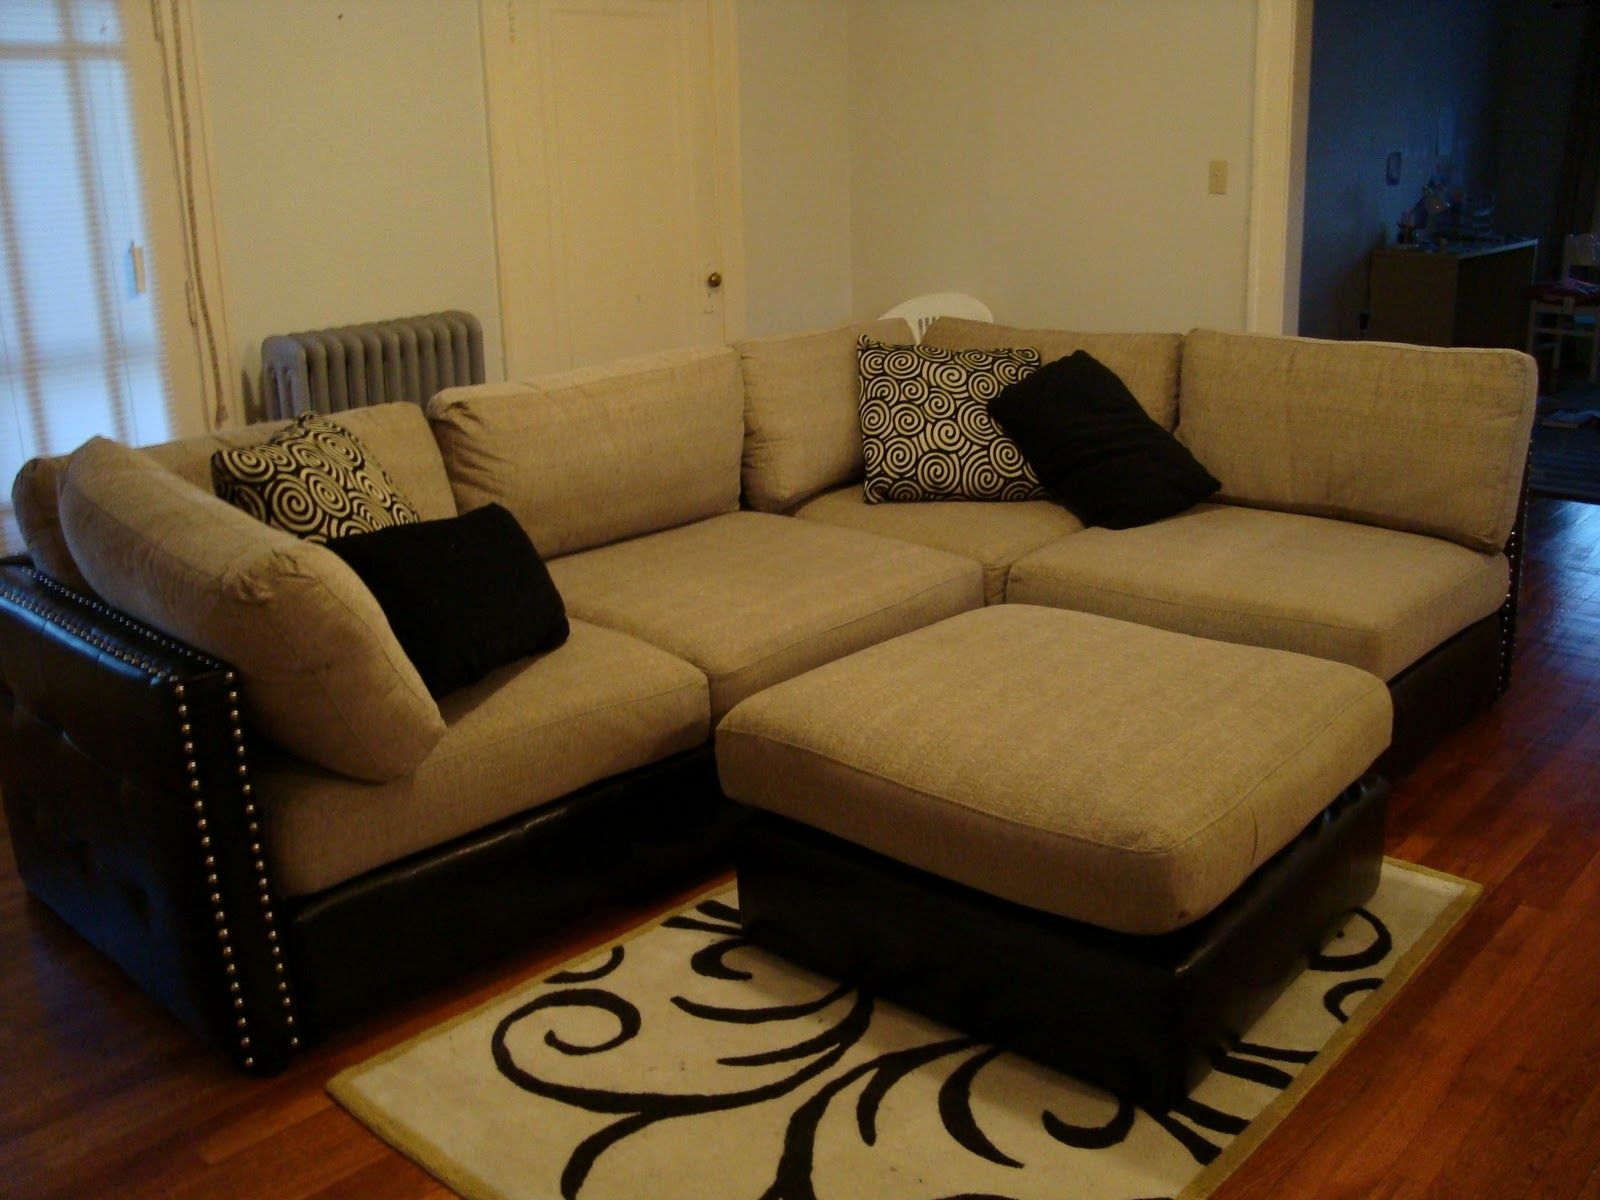 Delicieux Idea Best Sectional Sofa For The Money Pics Best Sectional Sofa For The  Money Fresh Best